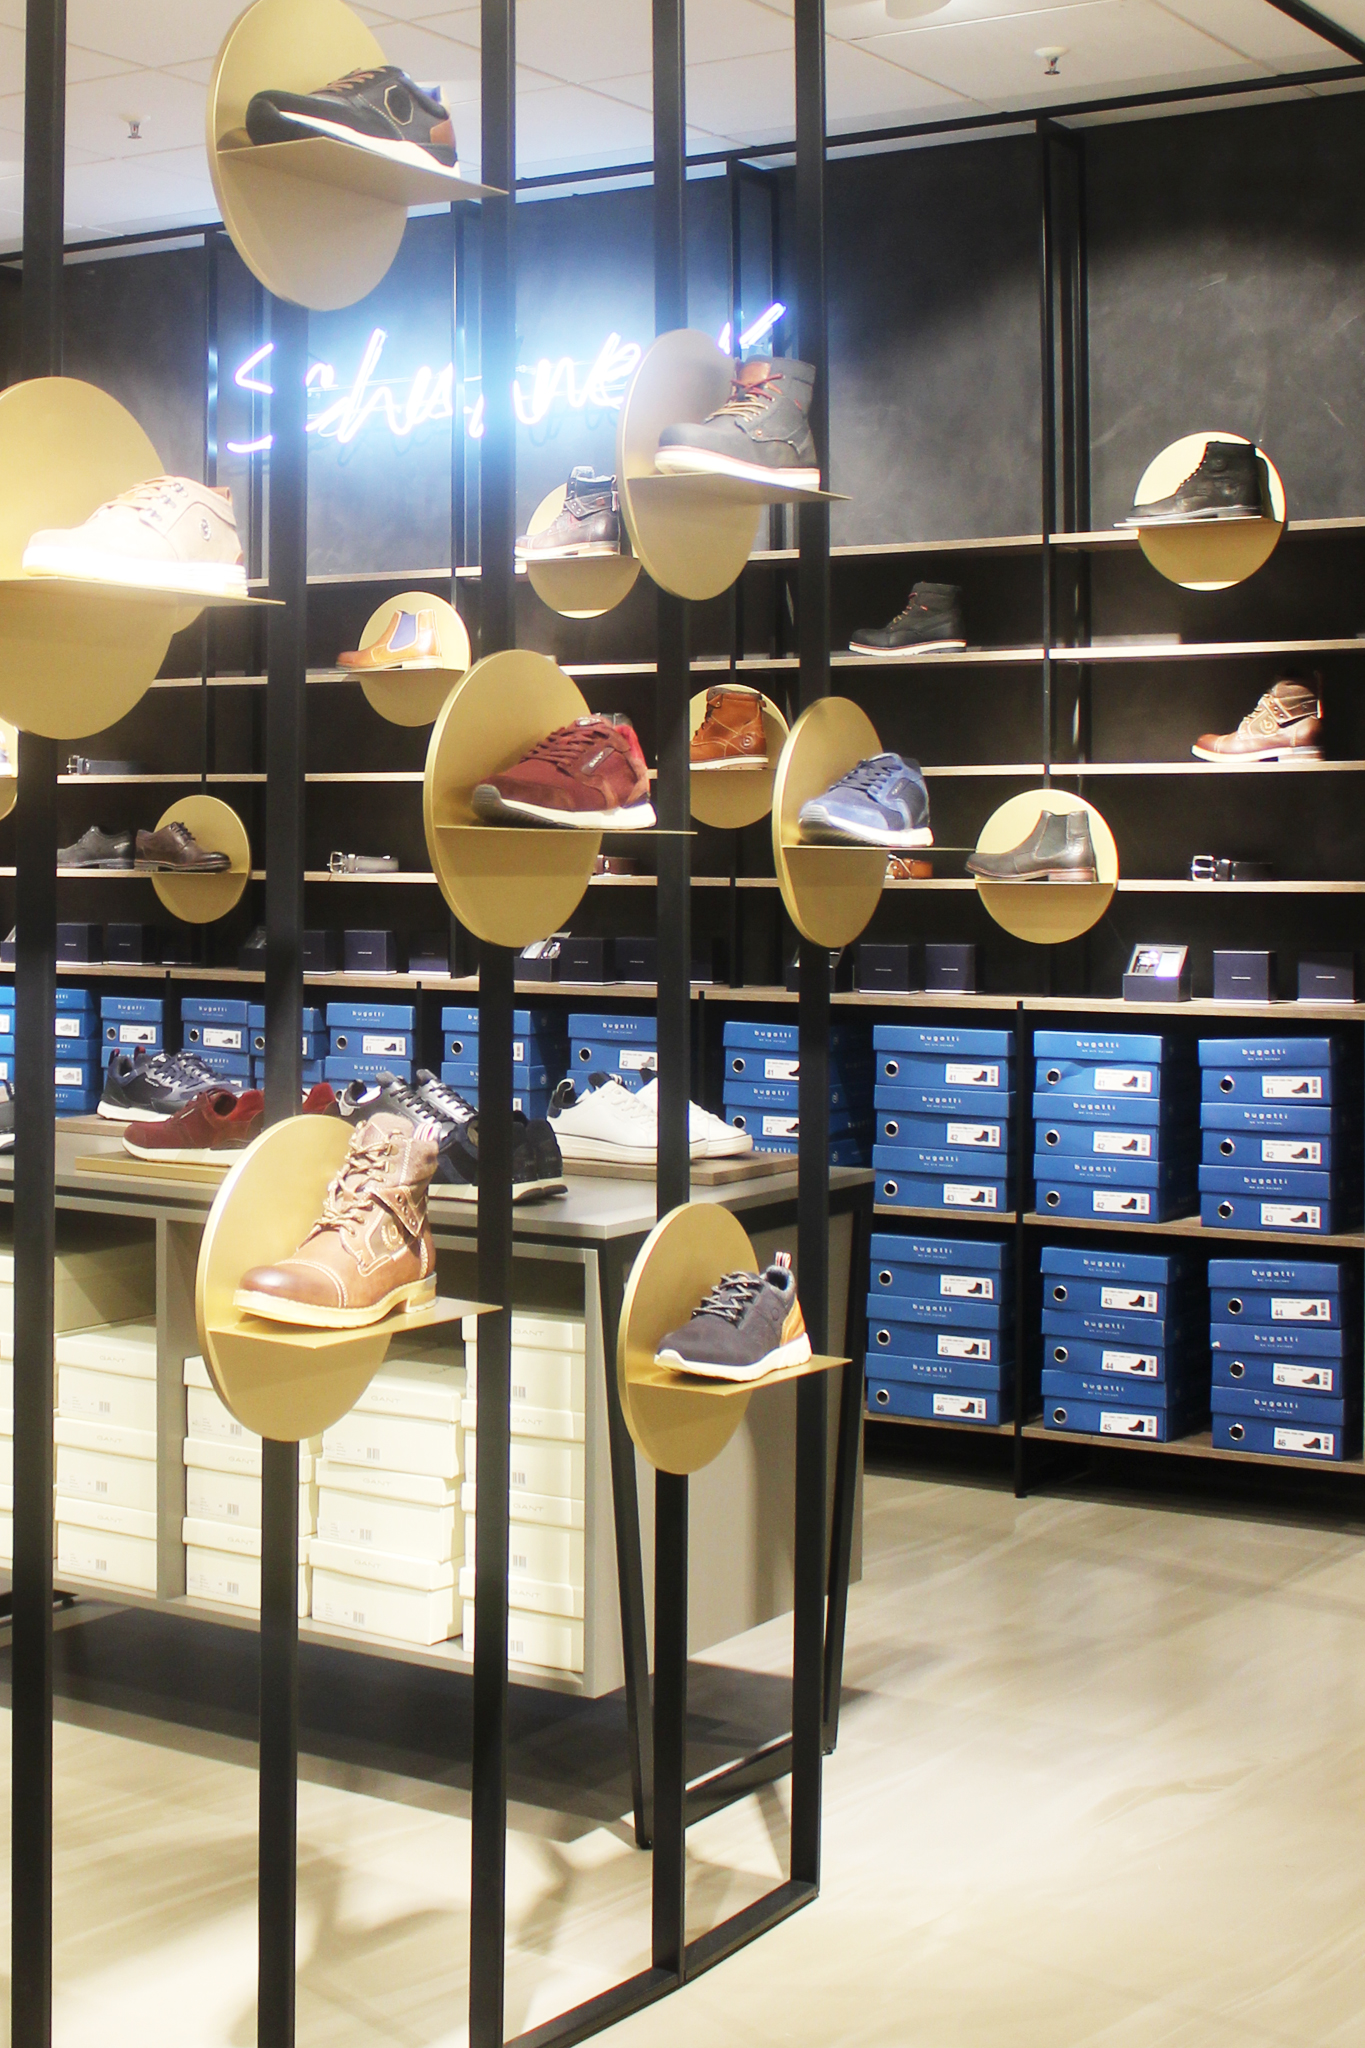 Beck S Shoes Corporate Office